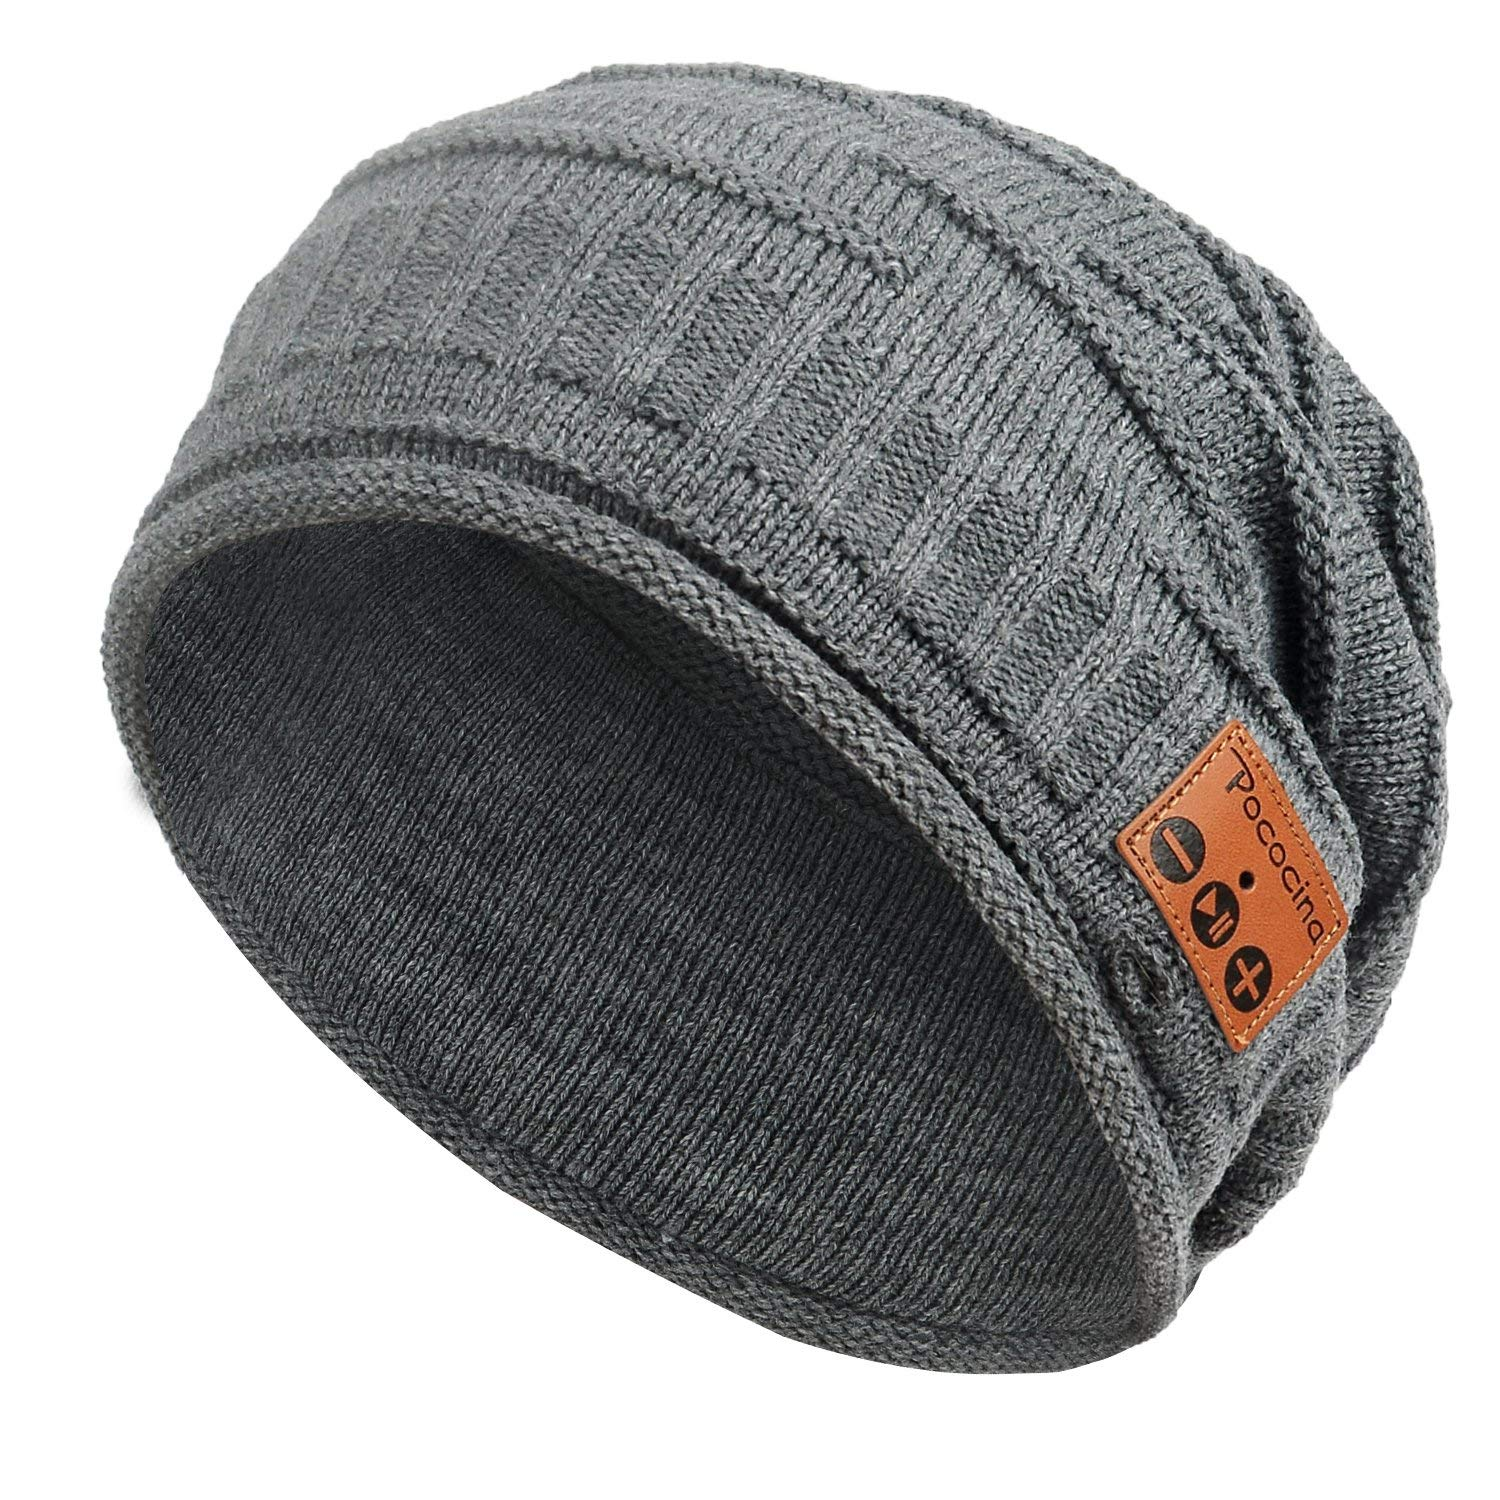 991a51f2a Bluetooth Beanie, Washable Slouchy Knit Hat with Bluetooth Headphones  Built-in Microphone Speaker Hands Free Wireless Music Skullies